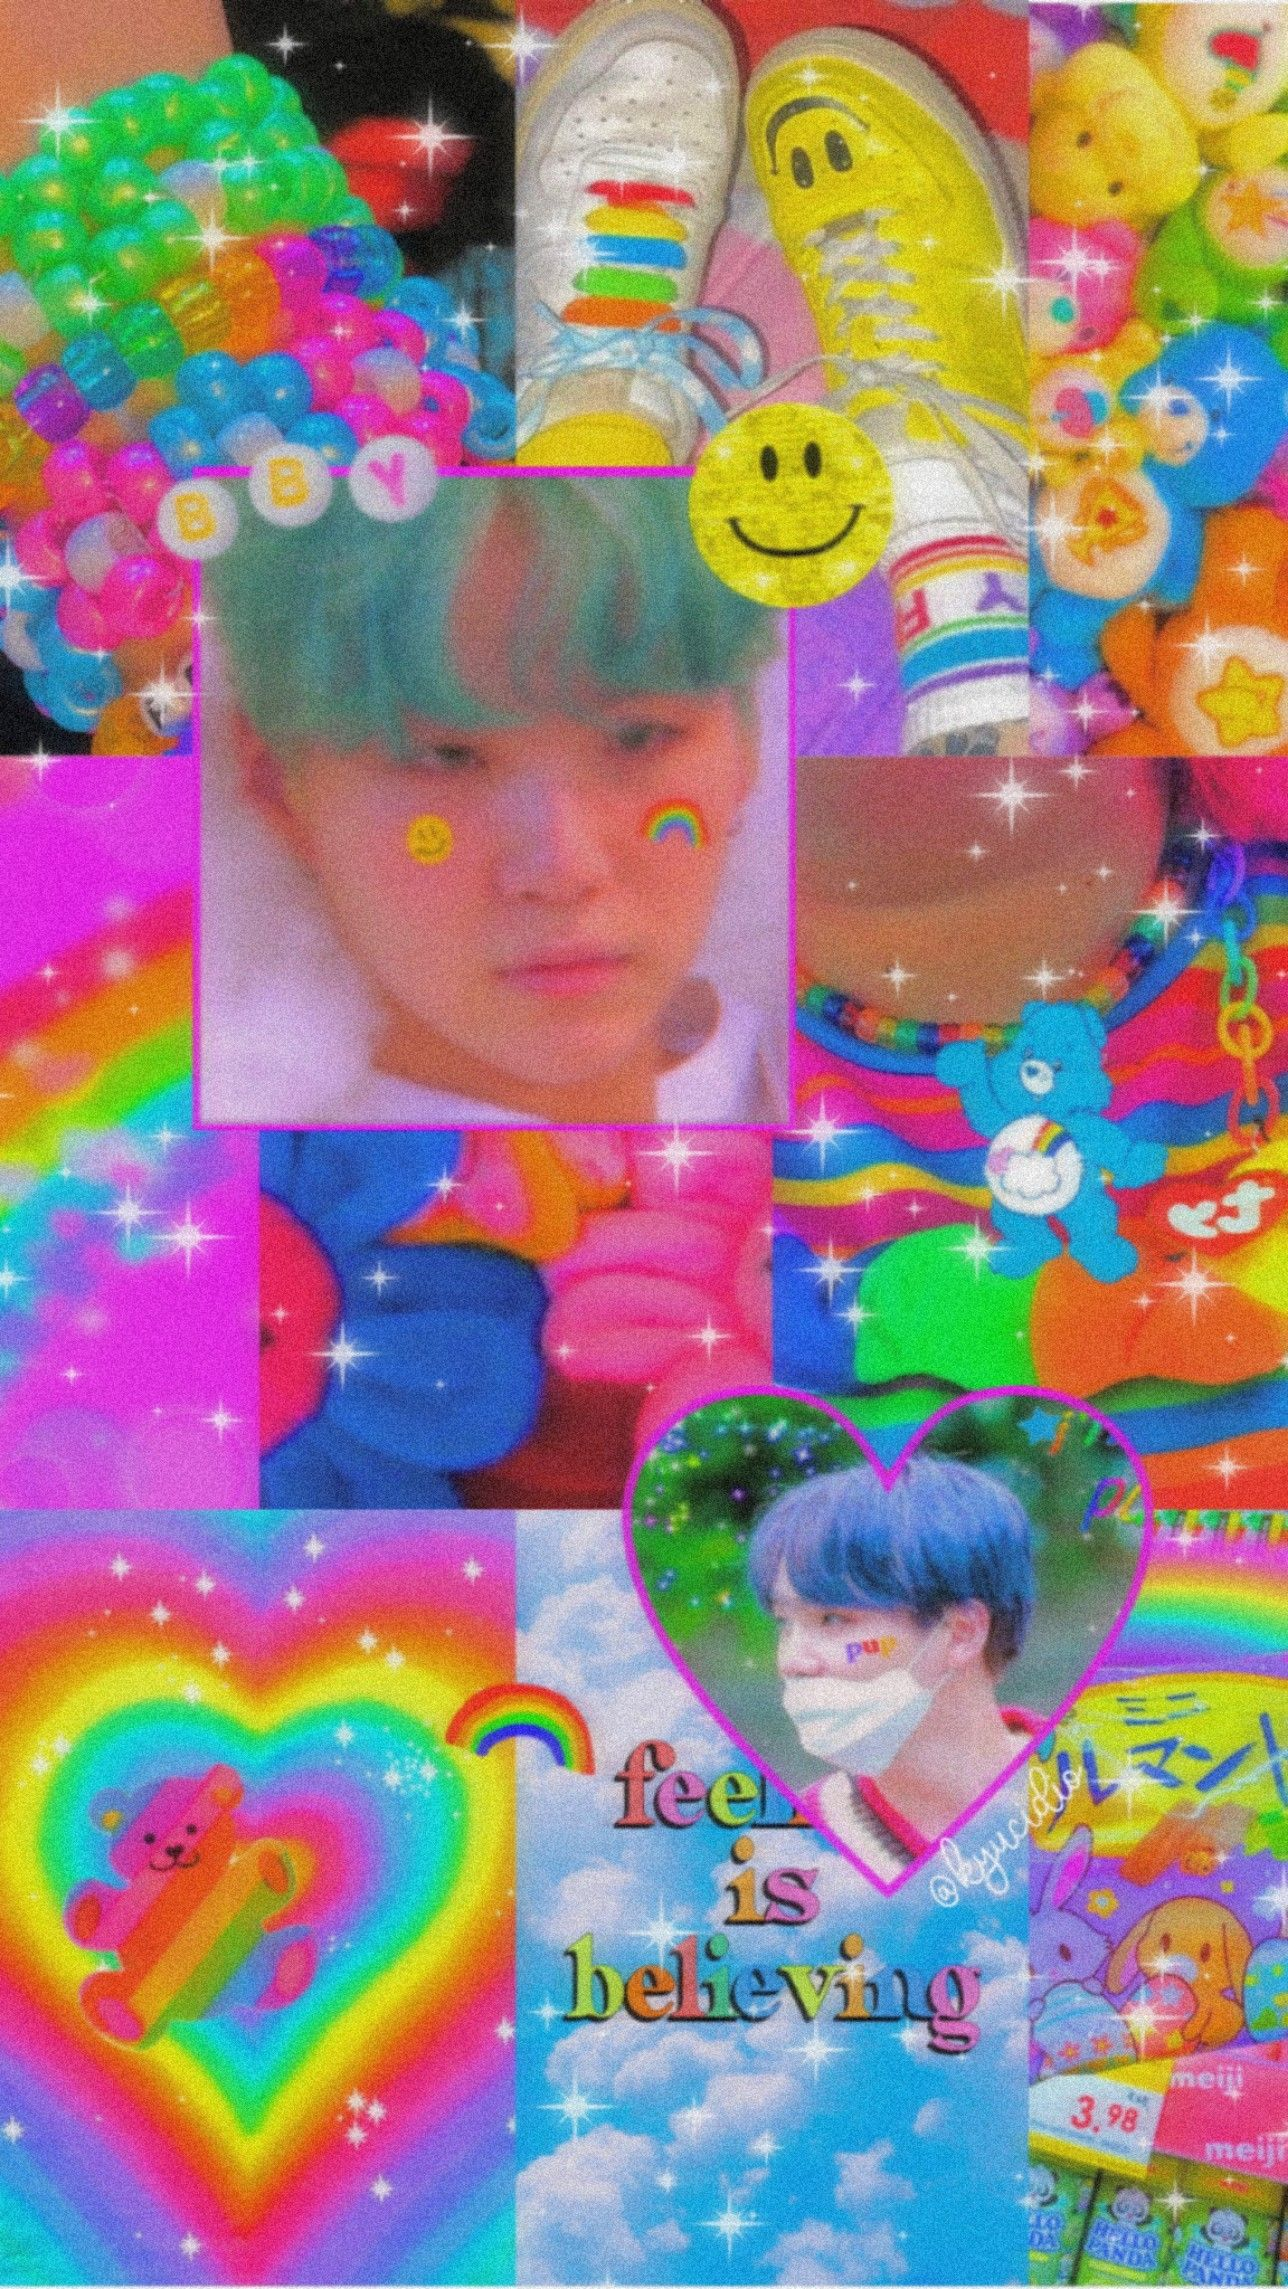 Yoongi Kidcore Rainbow Wallpaper Iphone Pretty Wallpaper Iphone Hippie Wallpaper We hope you enjoy our rising collection of bts wallpaper. yoongi kidcore rainbow wallpaper